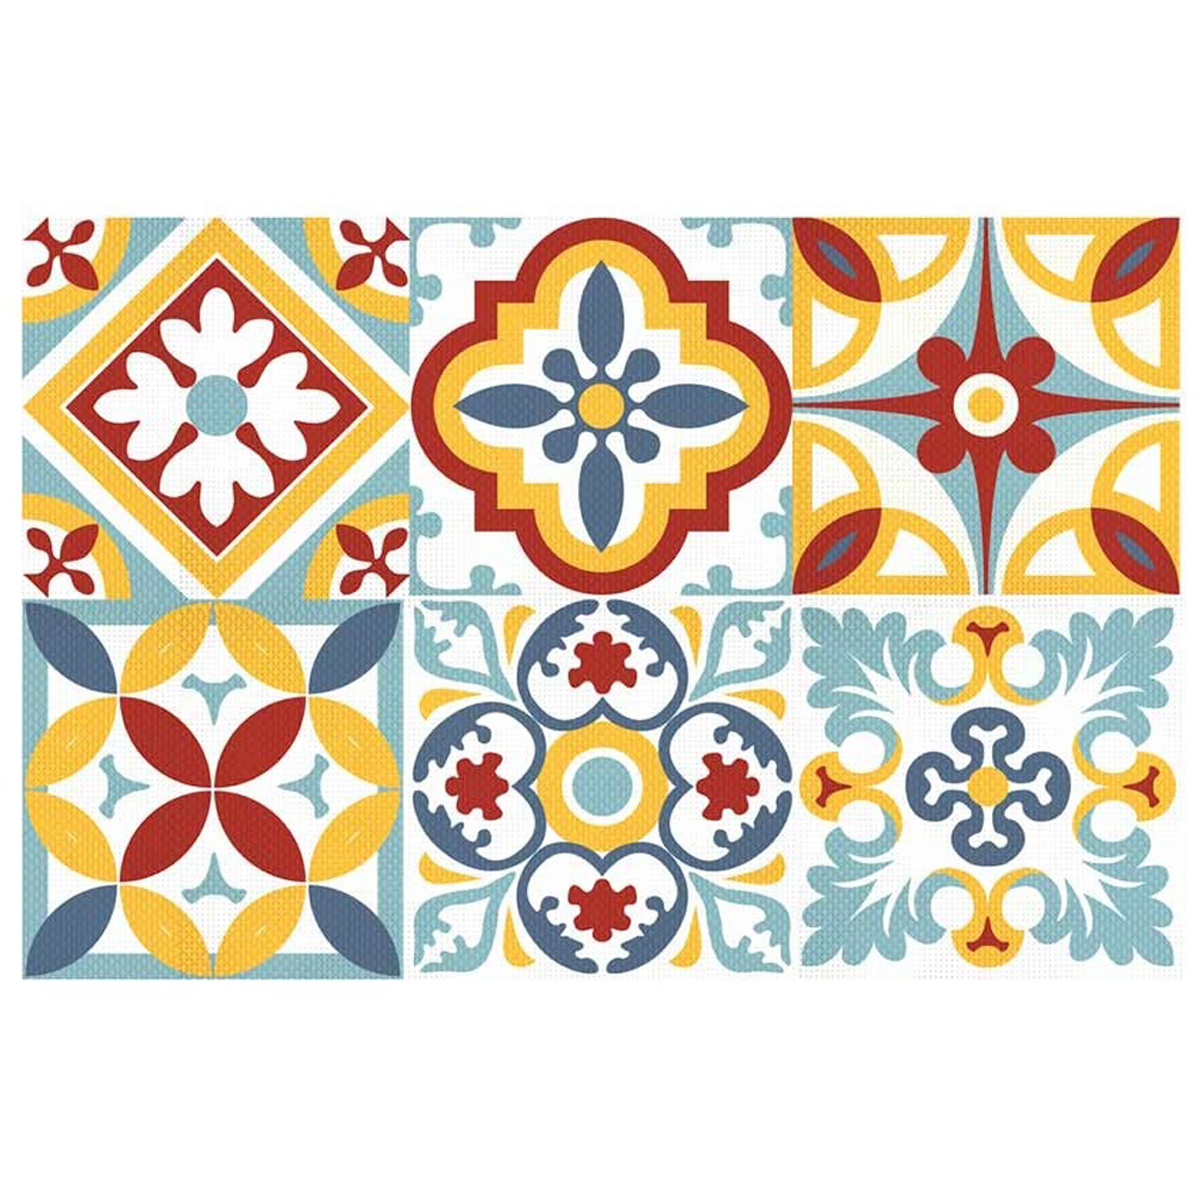 Set de table plastifié \'Boho\' multicolore (carreaux) - 43x28 cm - [Q5591]